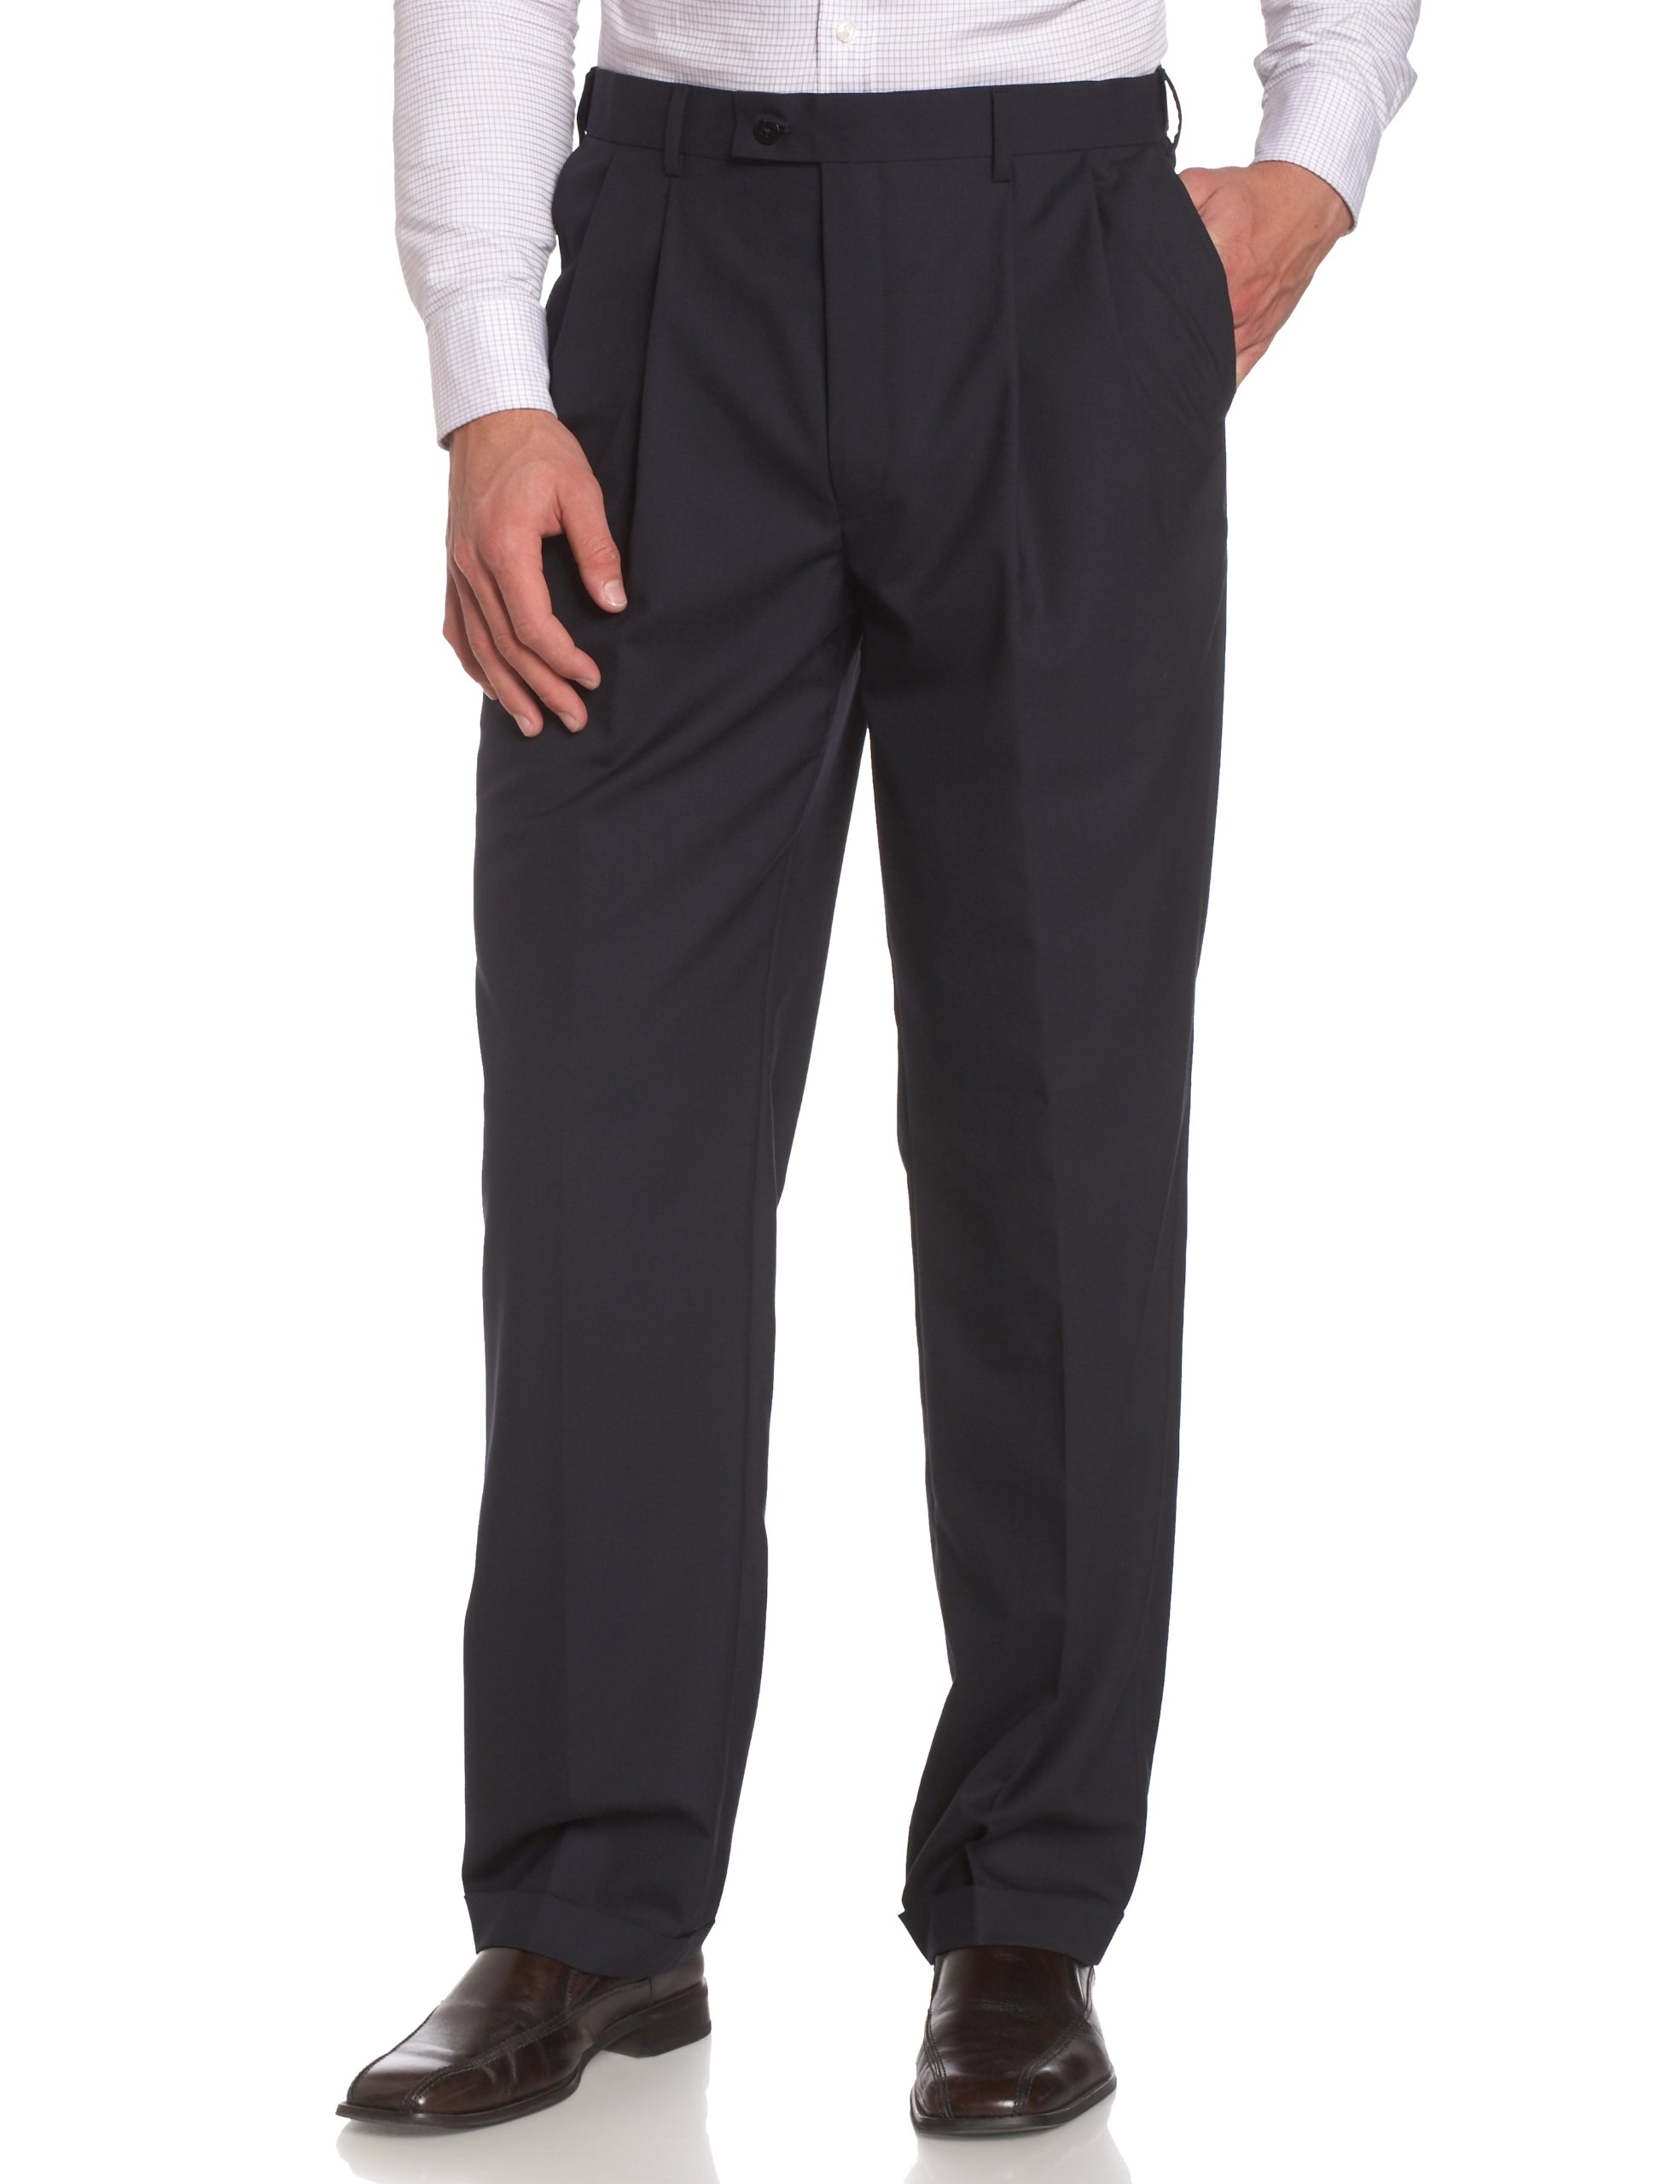 Louis Raphael LUXE Men's 100% Wool Pleated Dress Pant with Hidden Extension Waist Band,Navy,32x30